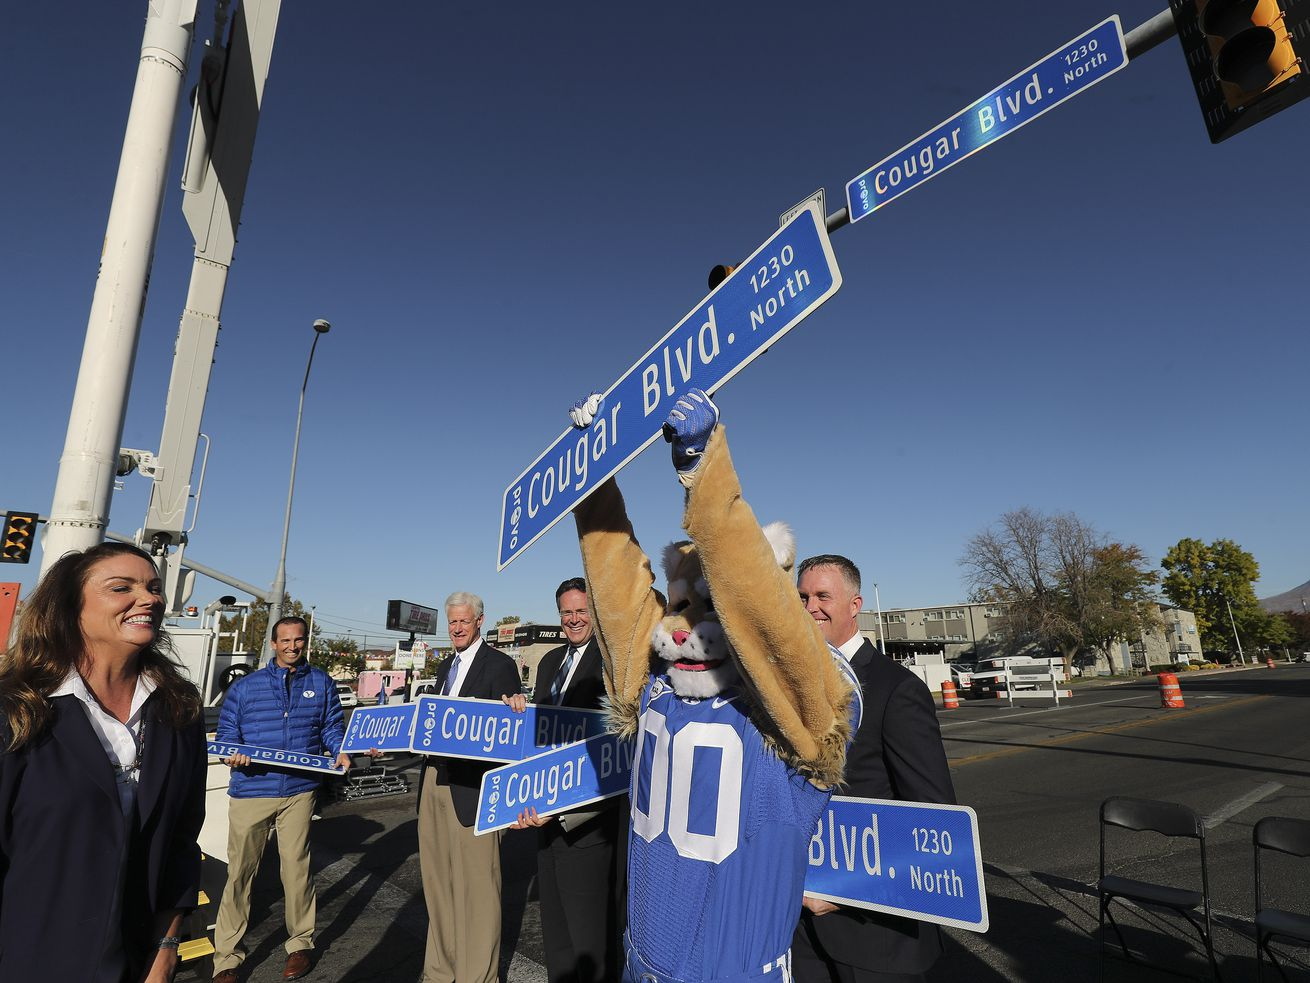 Cougar Boulevard: Provo renames road to celebrate BYU's 144th birthday